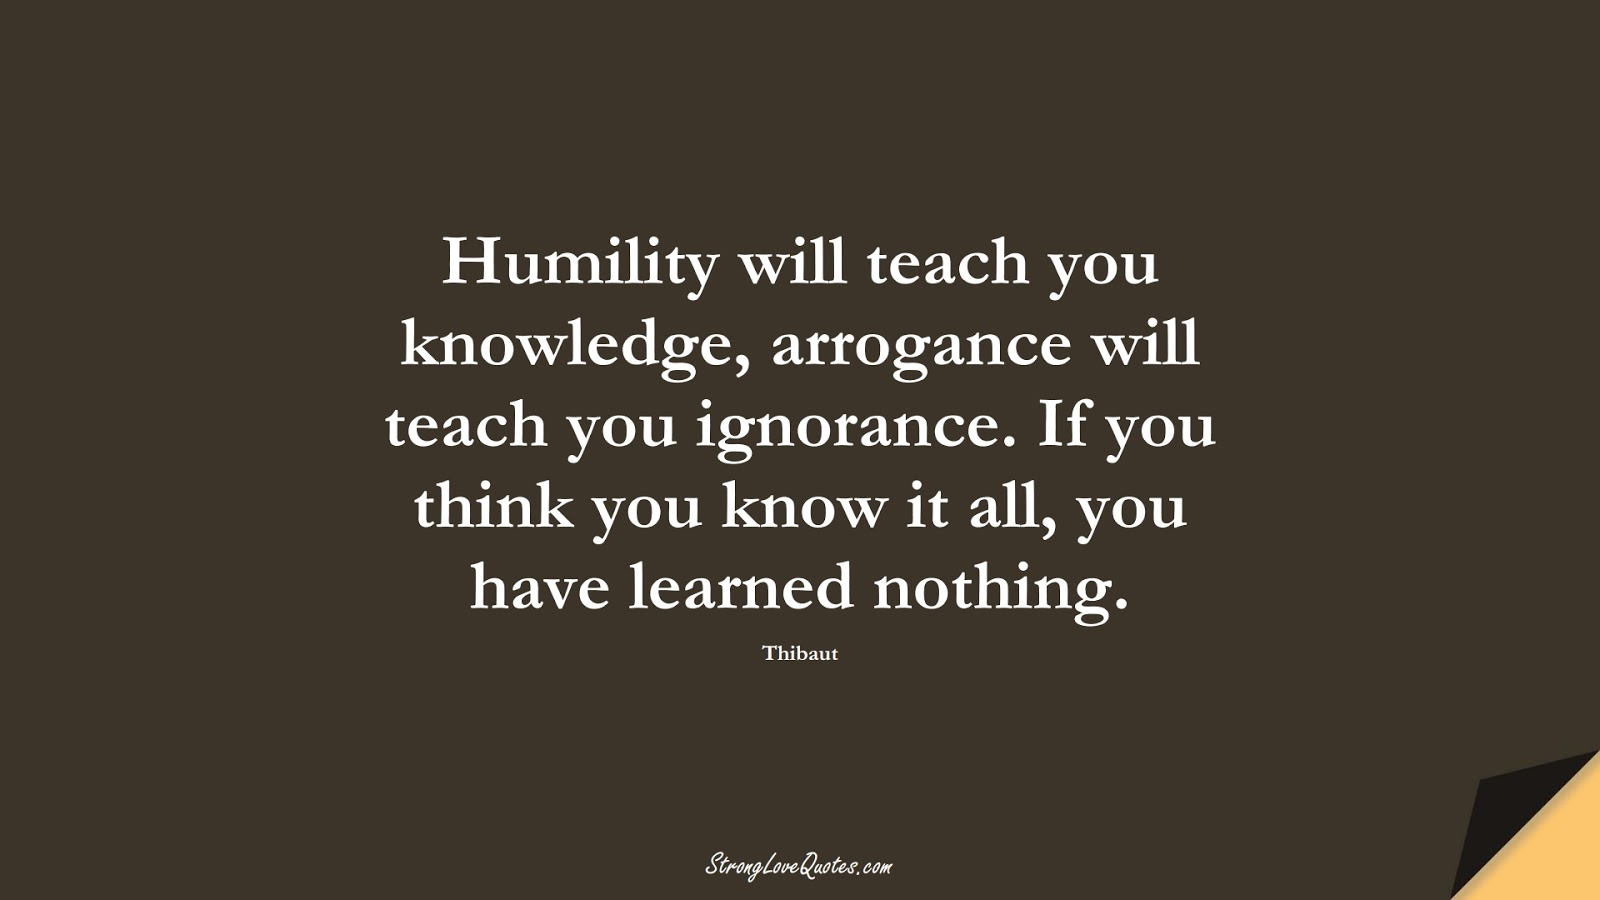 Humility will teach you knowledge, arrogance will teach you ignorance. If you think you know it all, you have learned nothing. (Thibaut);  #KnowledgeQuotes